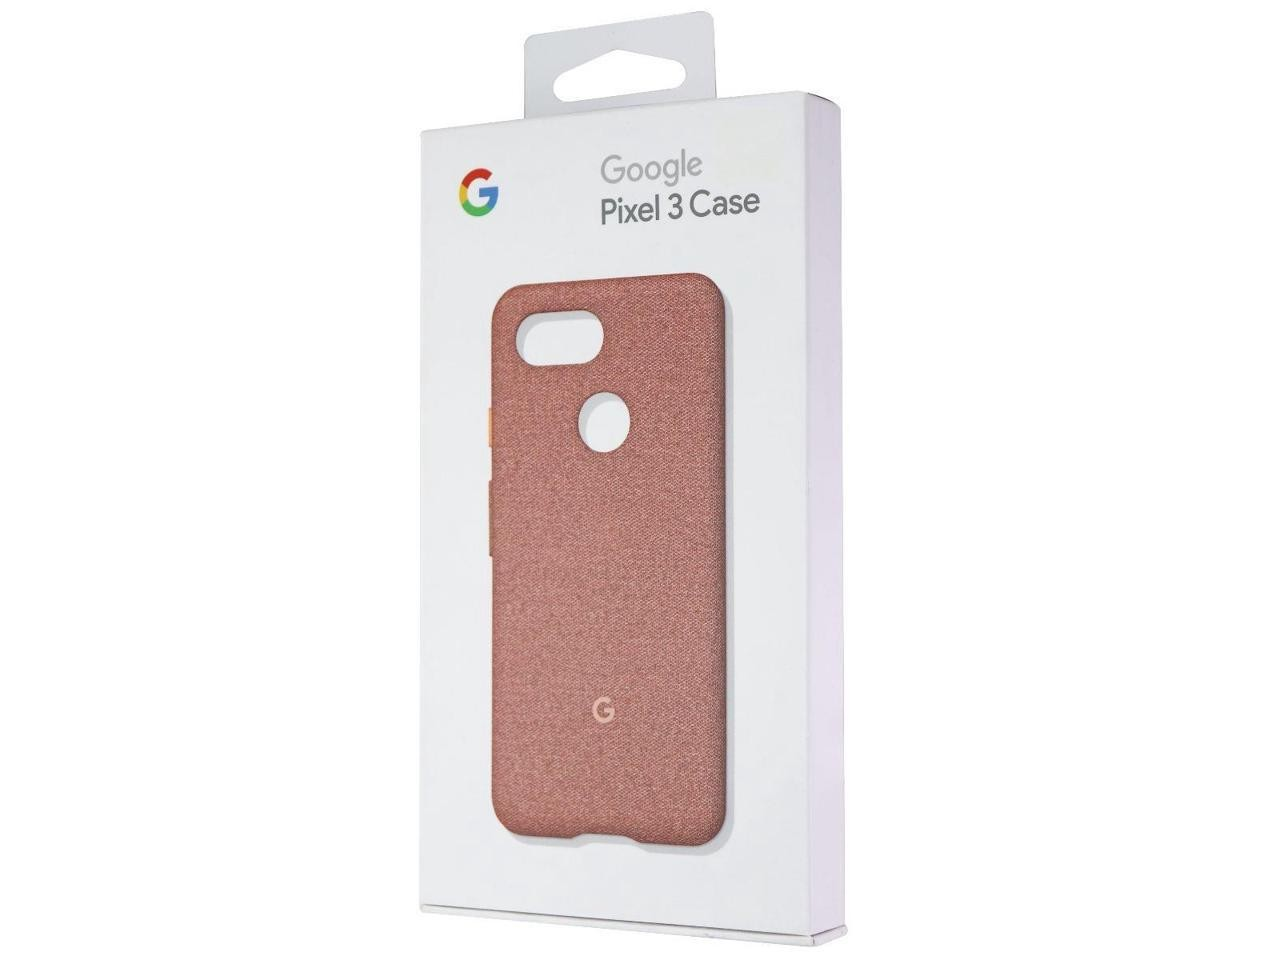 Google Fabric Case Cell Phone For Pixel 3 Moon Pink GA00492